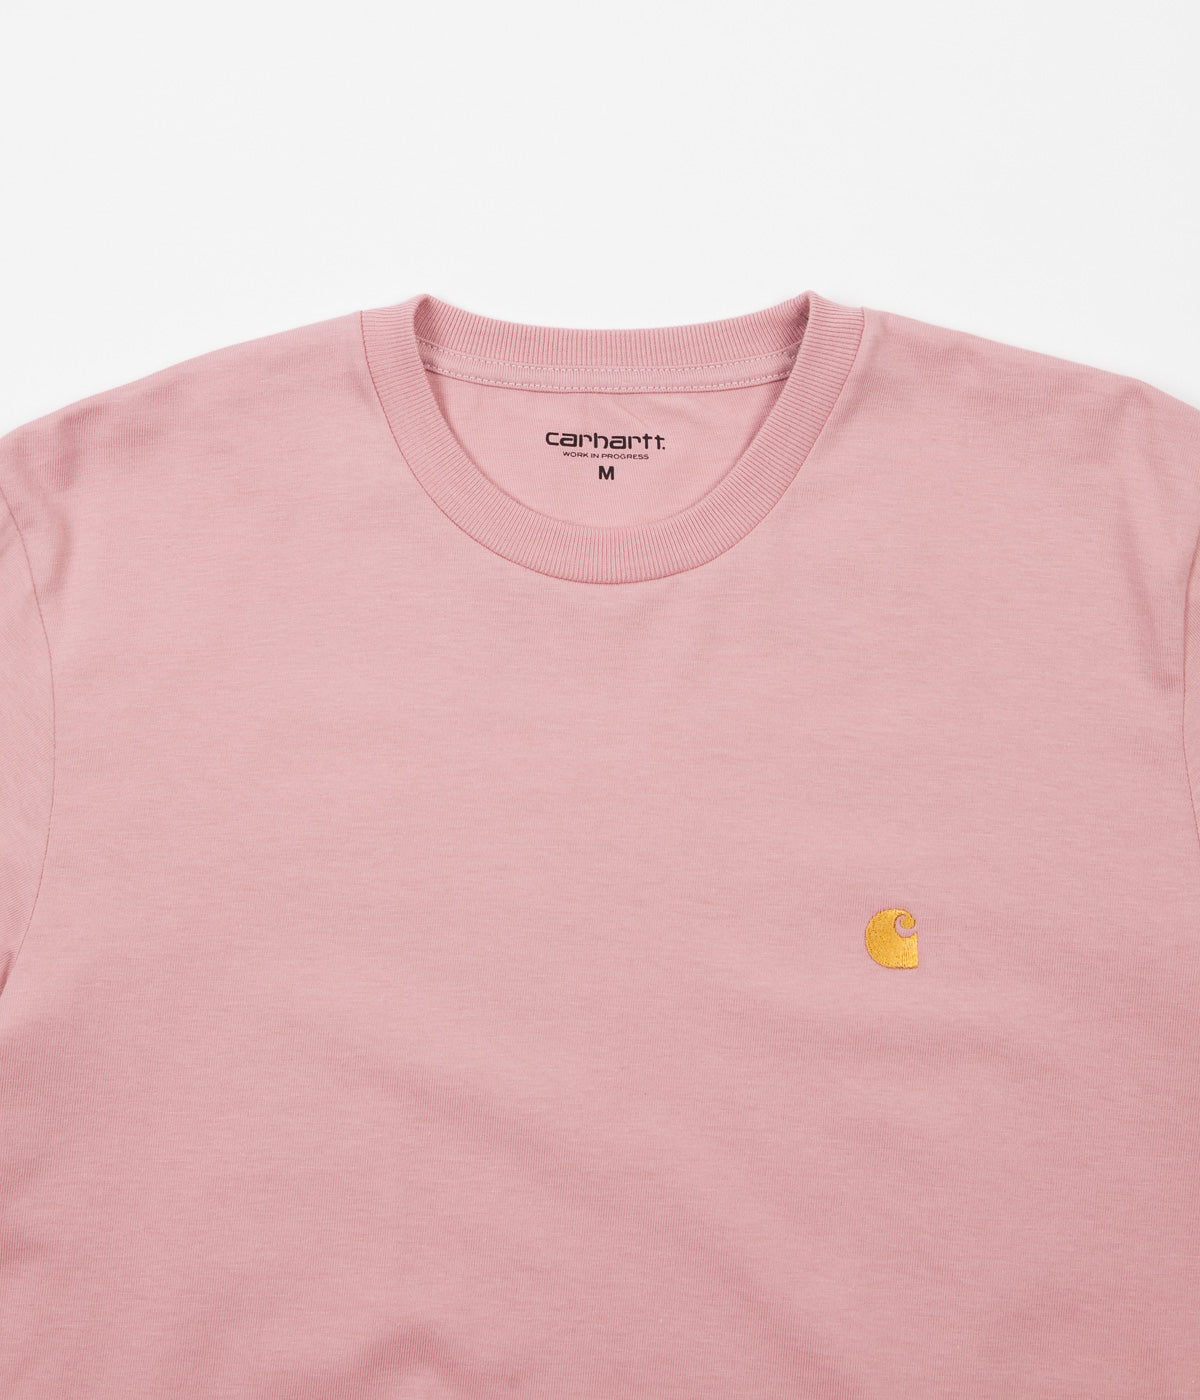 Carhartt Chase Long Sleeve T-Shirt - Soft Rose / Gold